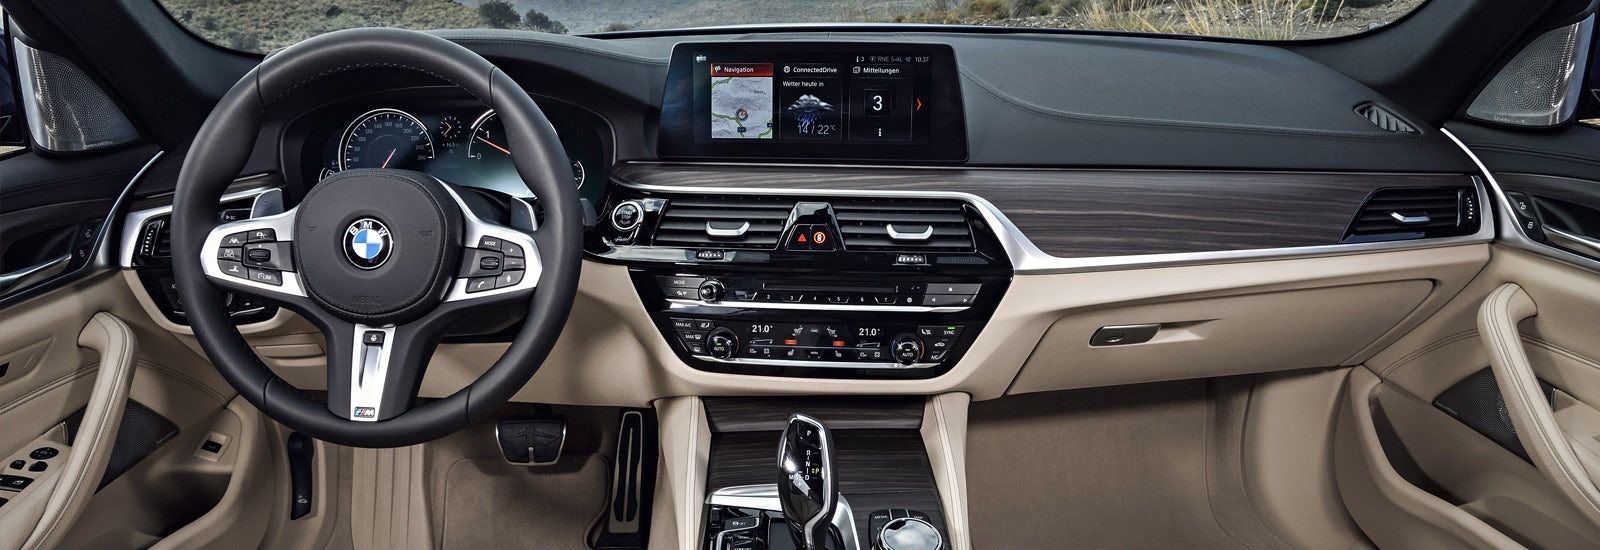 New bmw 8 series price specs release date carwow - The Bmw X4 S Interior Should Share Many Of Its Components With The Current 5 Series Pictured Here